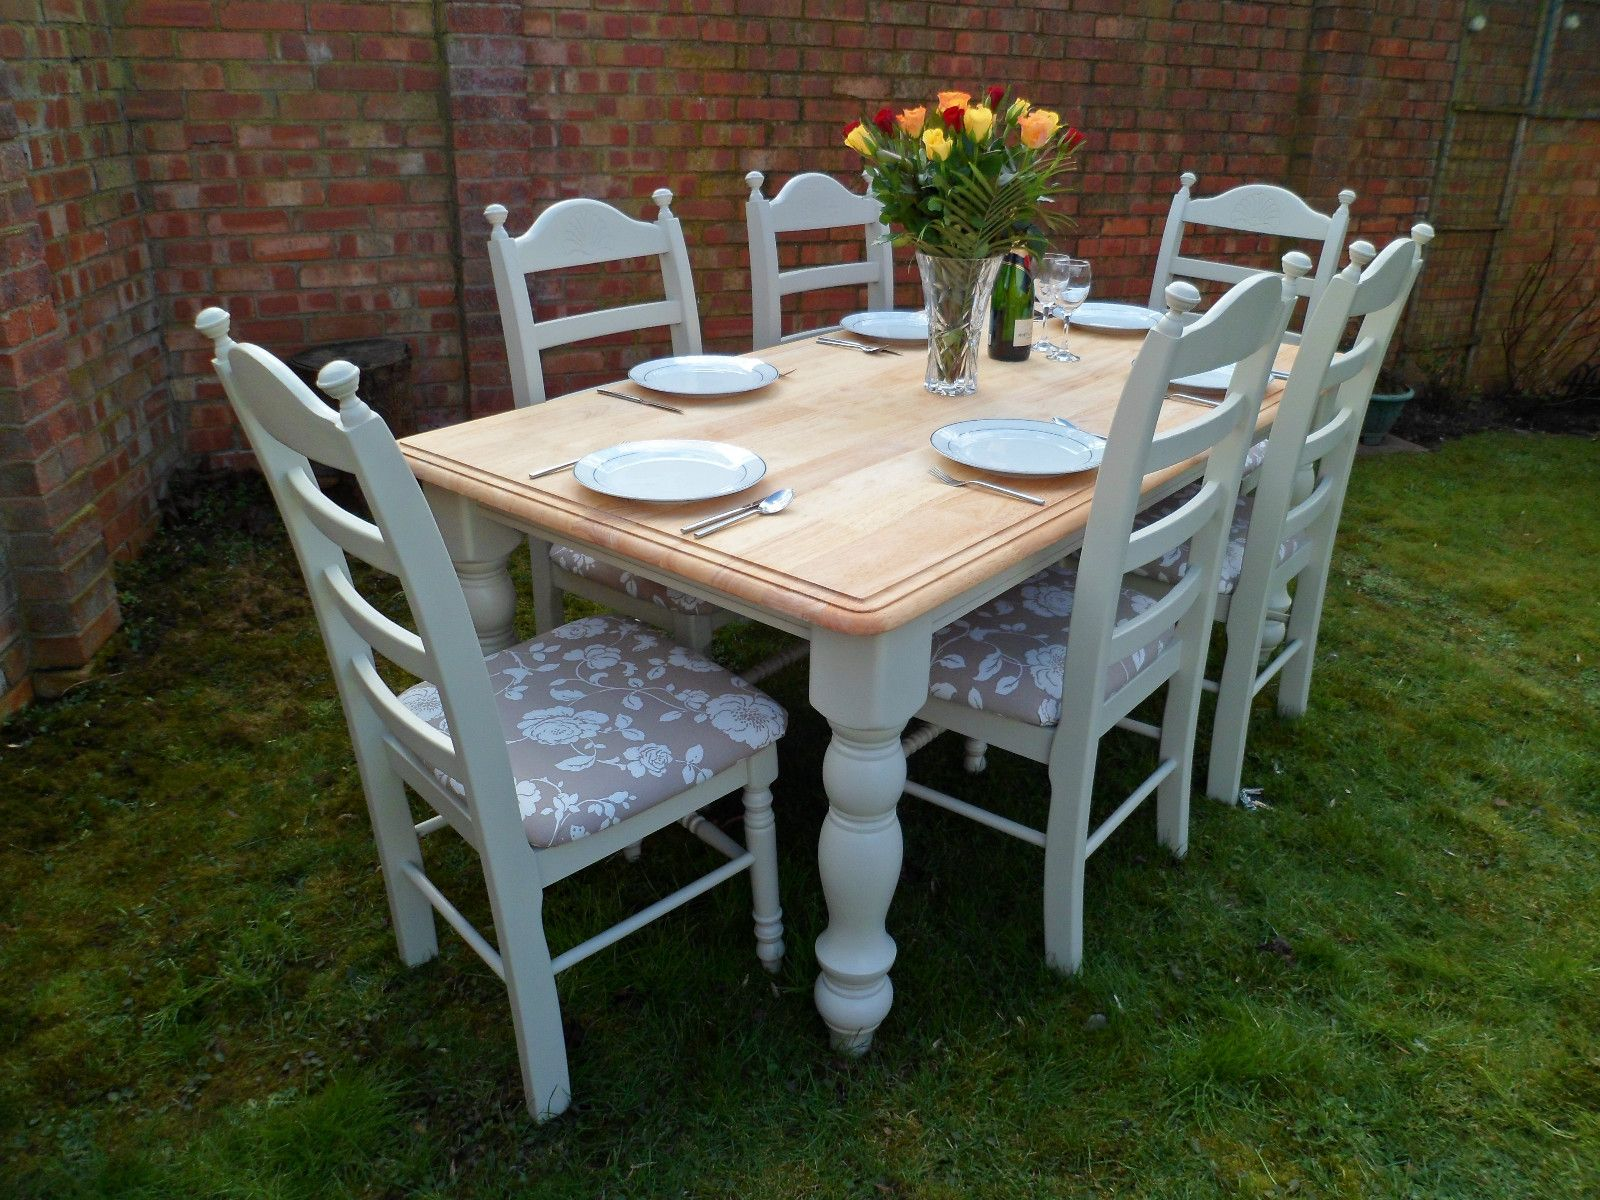 Diy Shabby Chic Dining Table And Chairs Shabby Chic Dining Room Tables Amazing Diy Dining Table